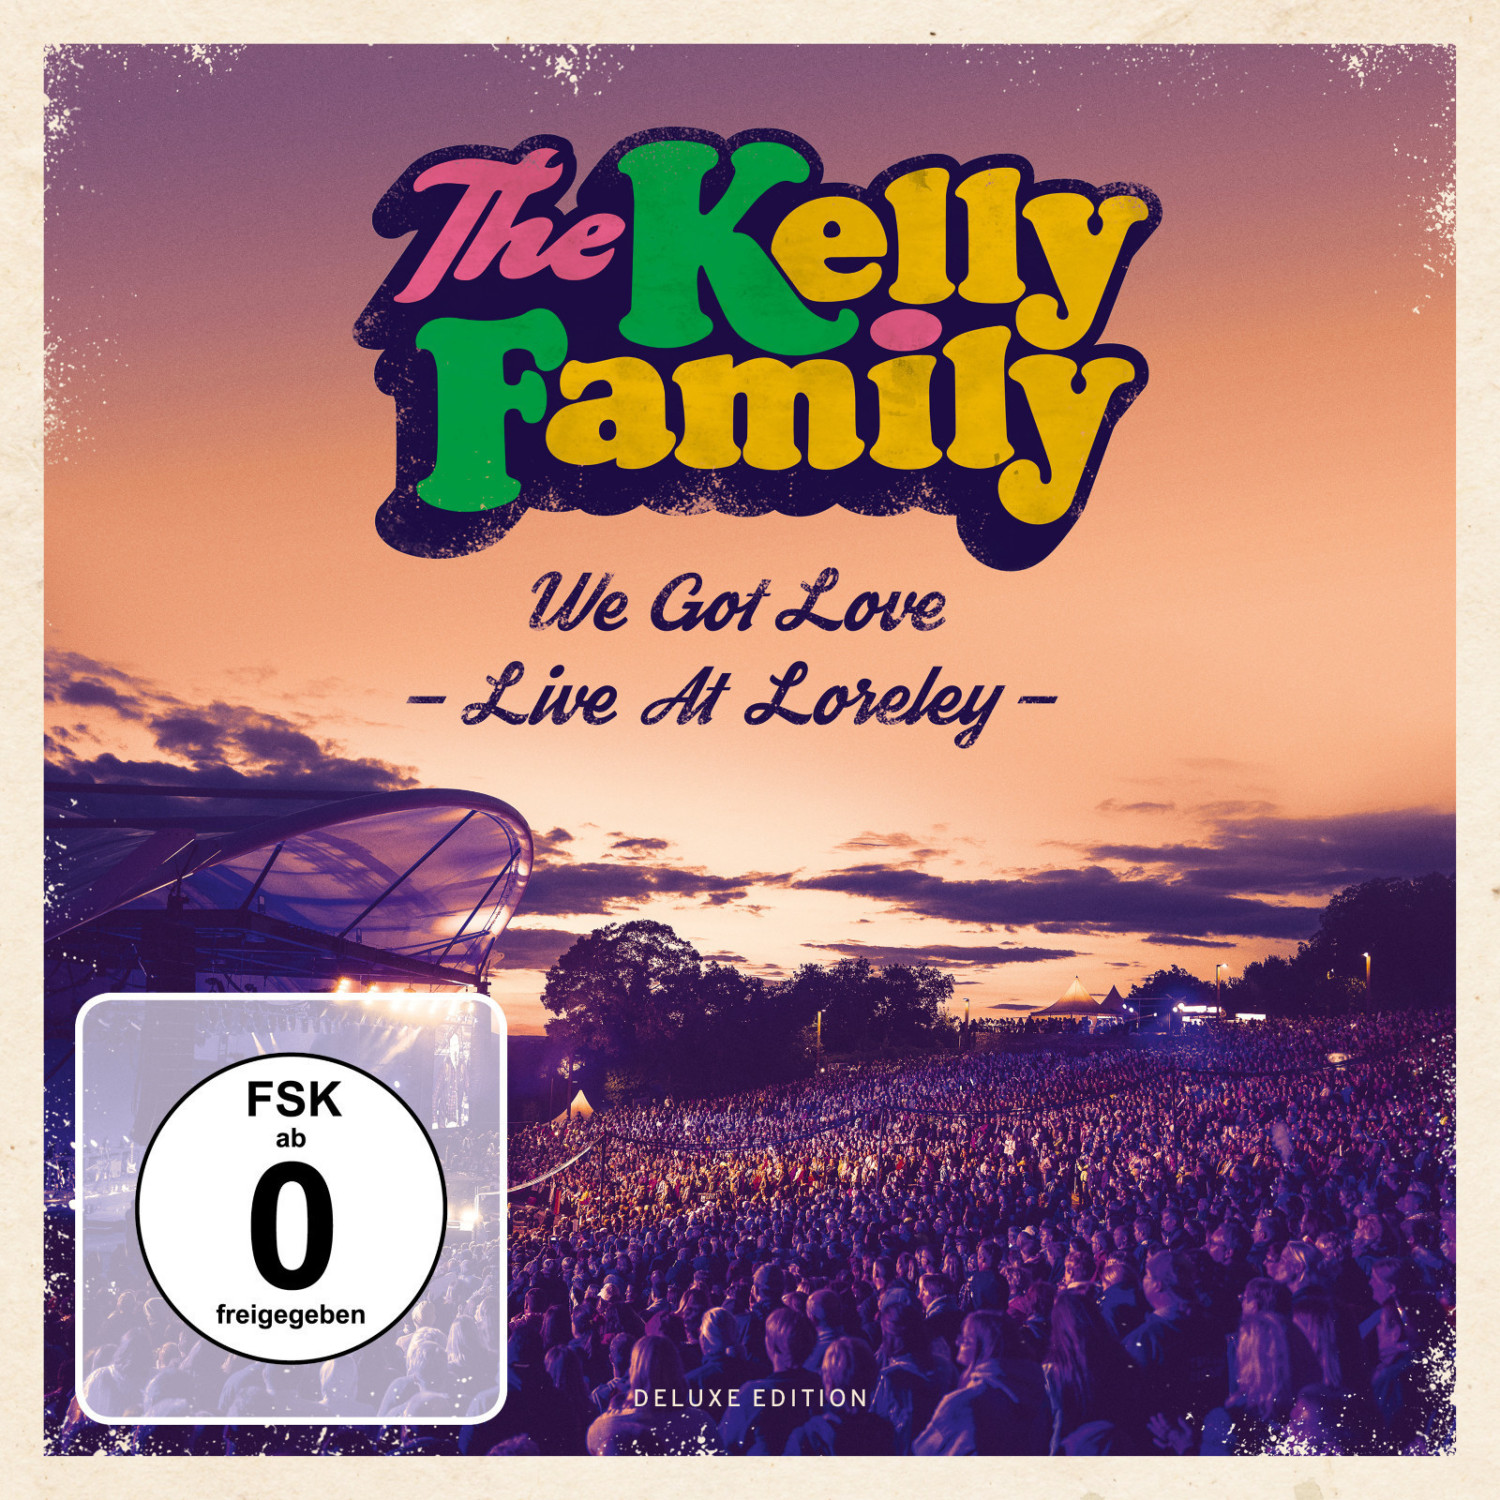 The Kelly Family - We got Love - Live at Loreley (Deluxe Edition) (CD + DVD)